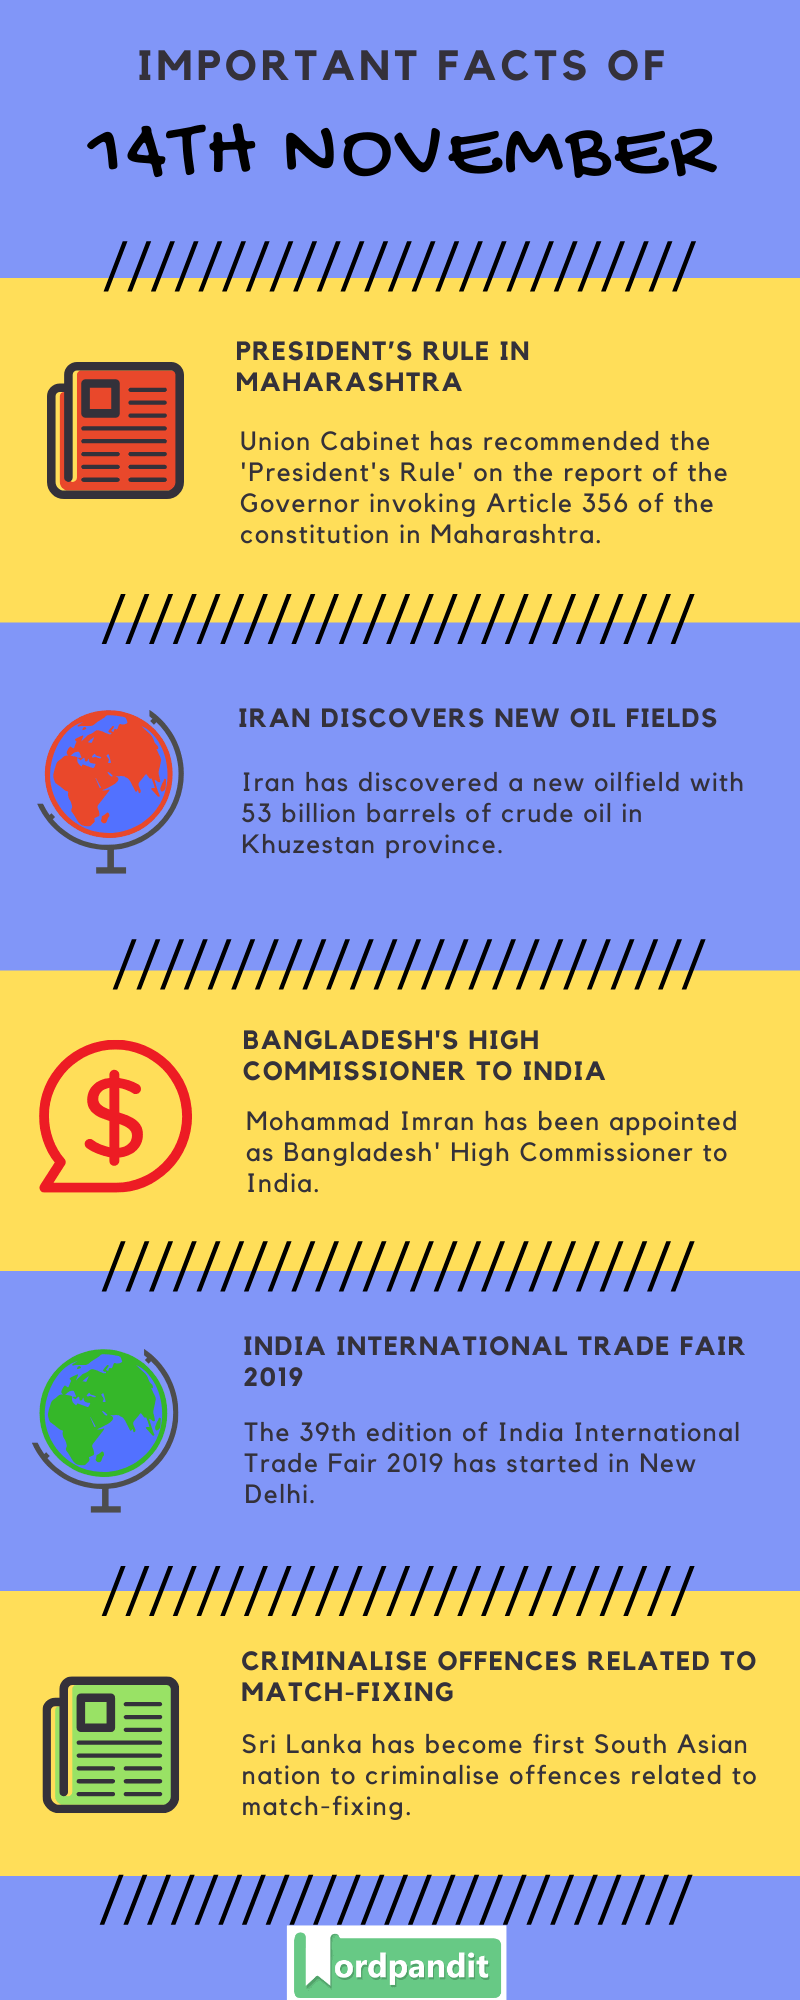 Daily Current Affairs 14 November 2019 Current Affairs Quiz 14 November 2019 Current Affairs Infographic